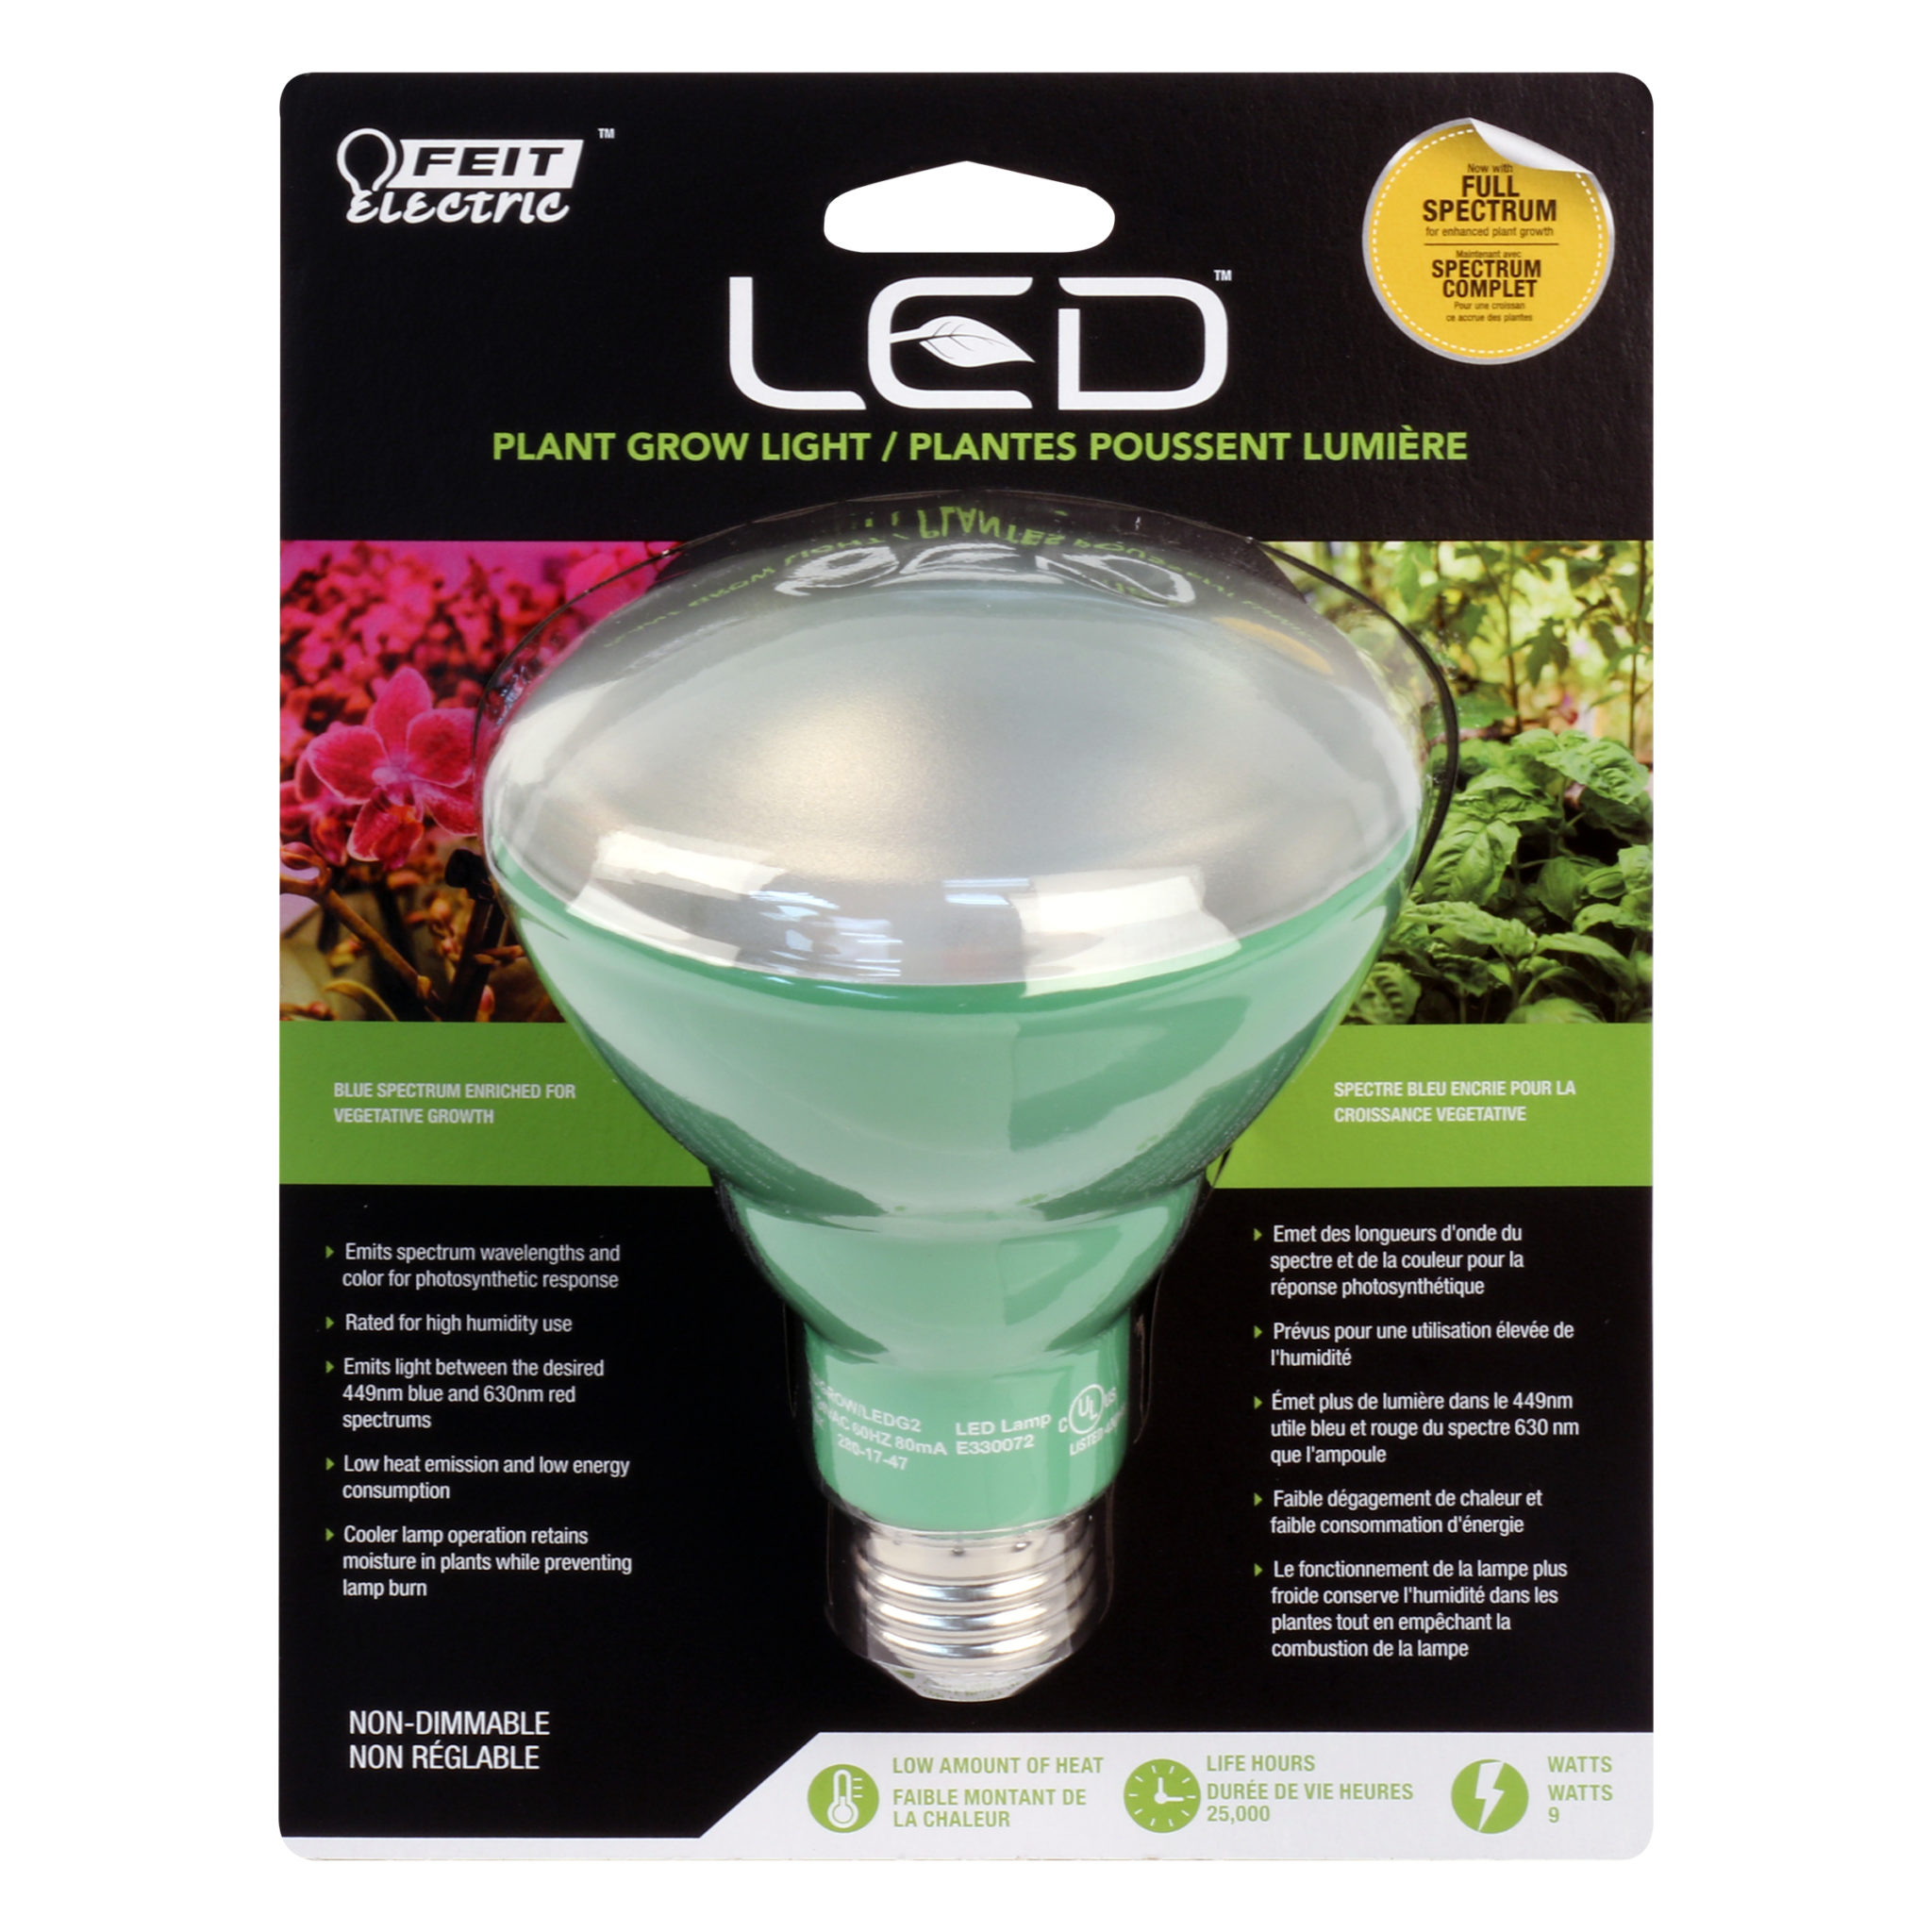 indoor grow lights gardens and styles garden hgtv types of for light outdoors plants